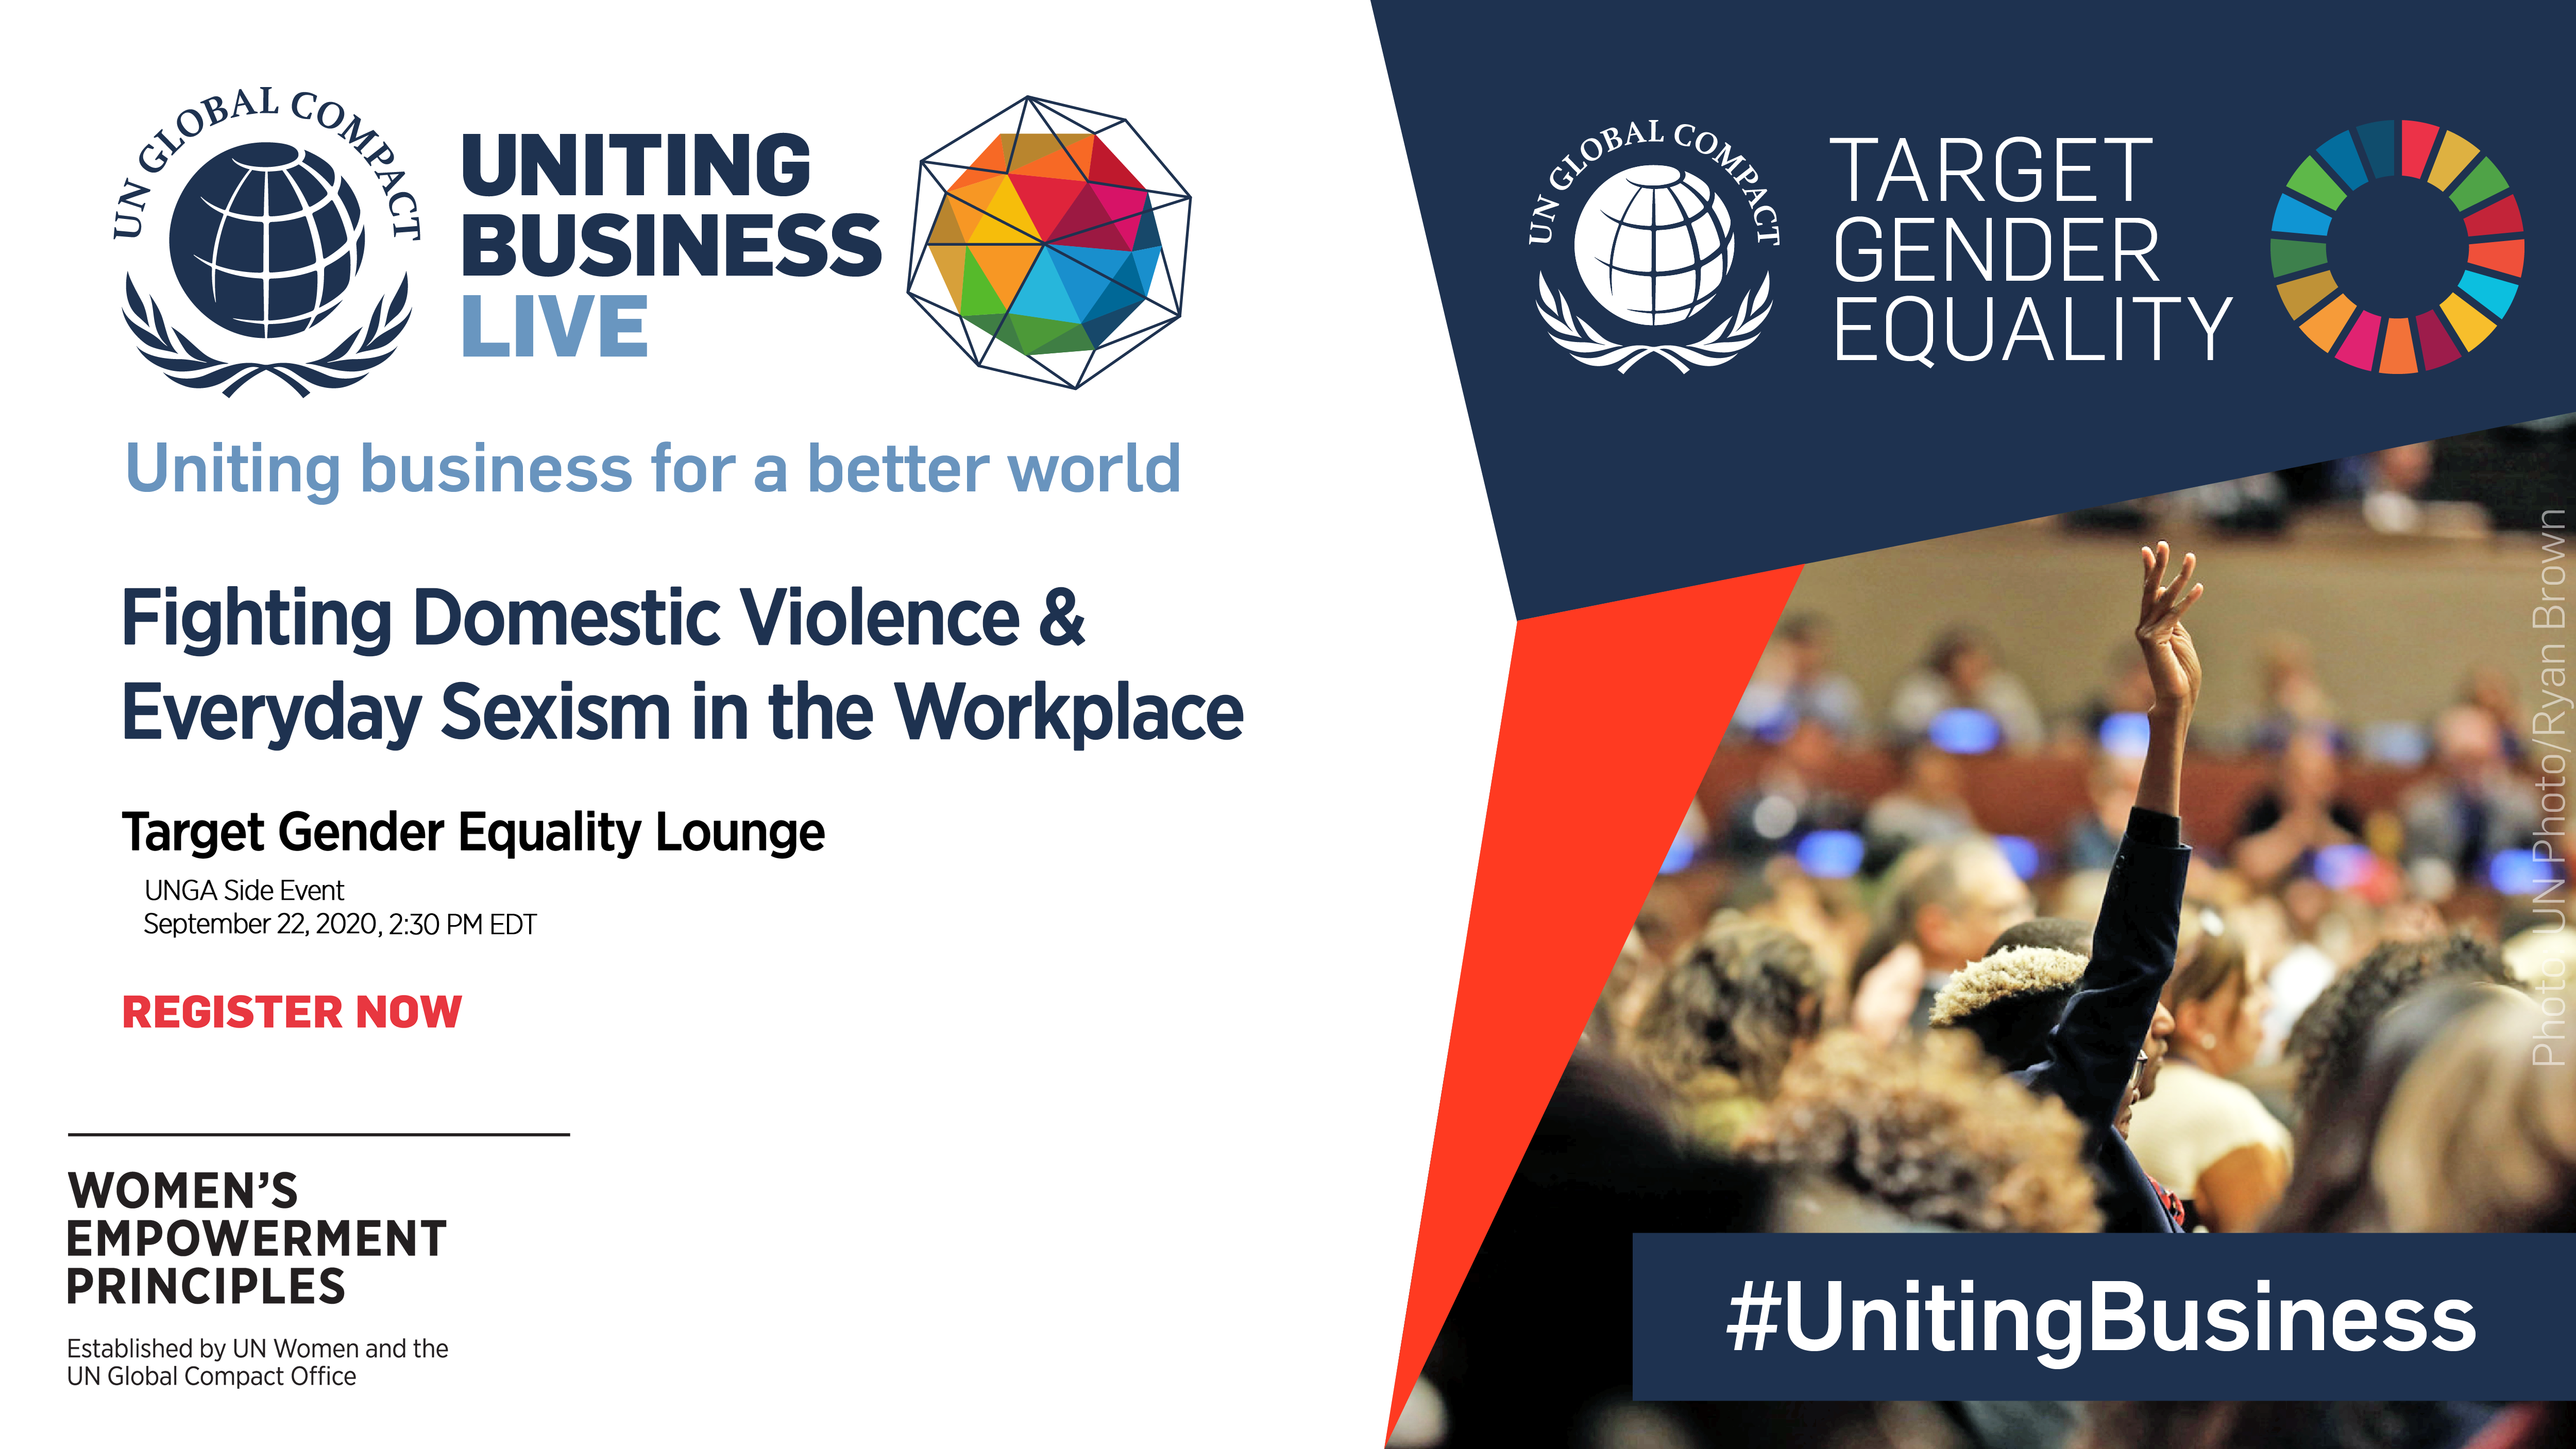 Uniting Business Live